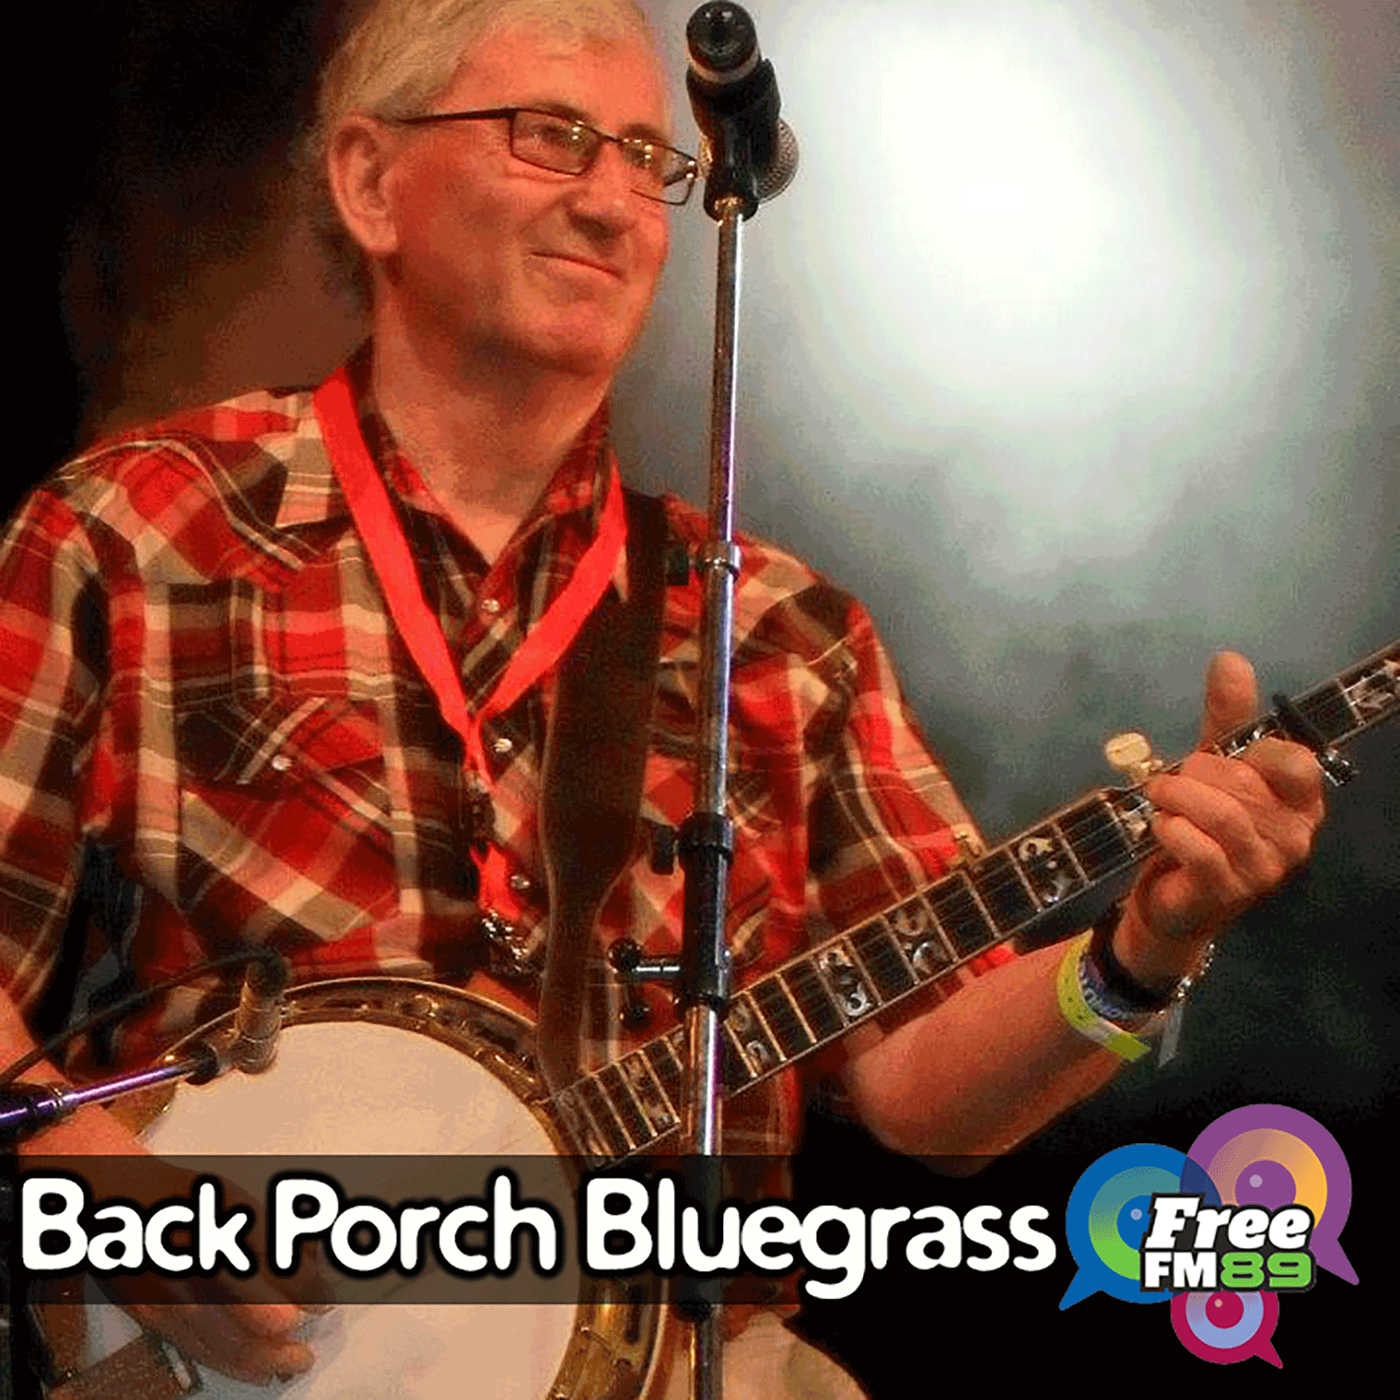 Back Porch Bluegrass - 19-11-2019